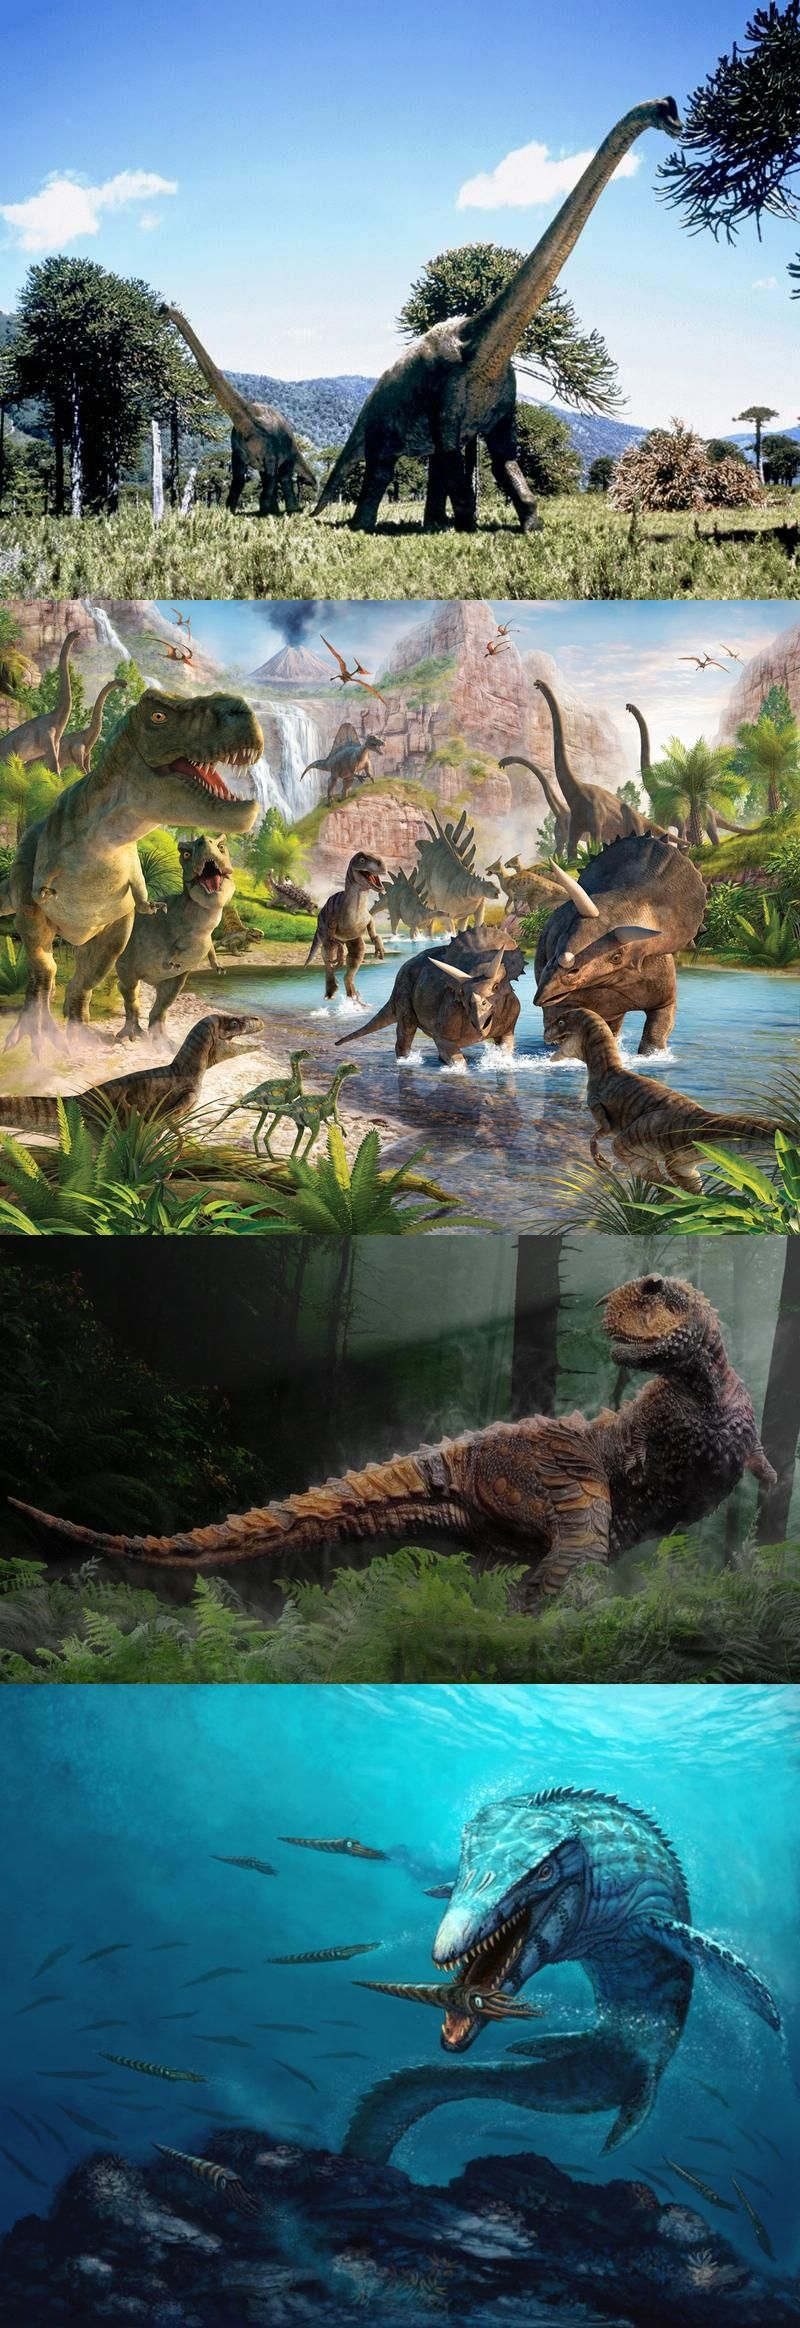 Dinosaurs ~Yes, dinosaurs were real. Creation is a myth, as are your gods. #dinosaur